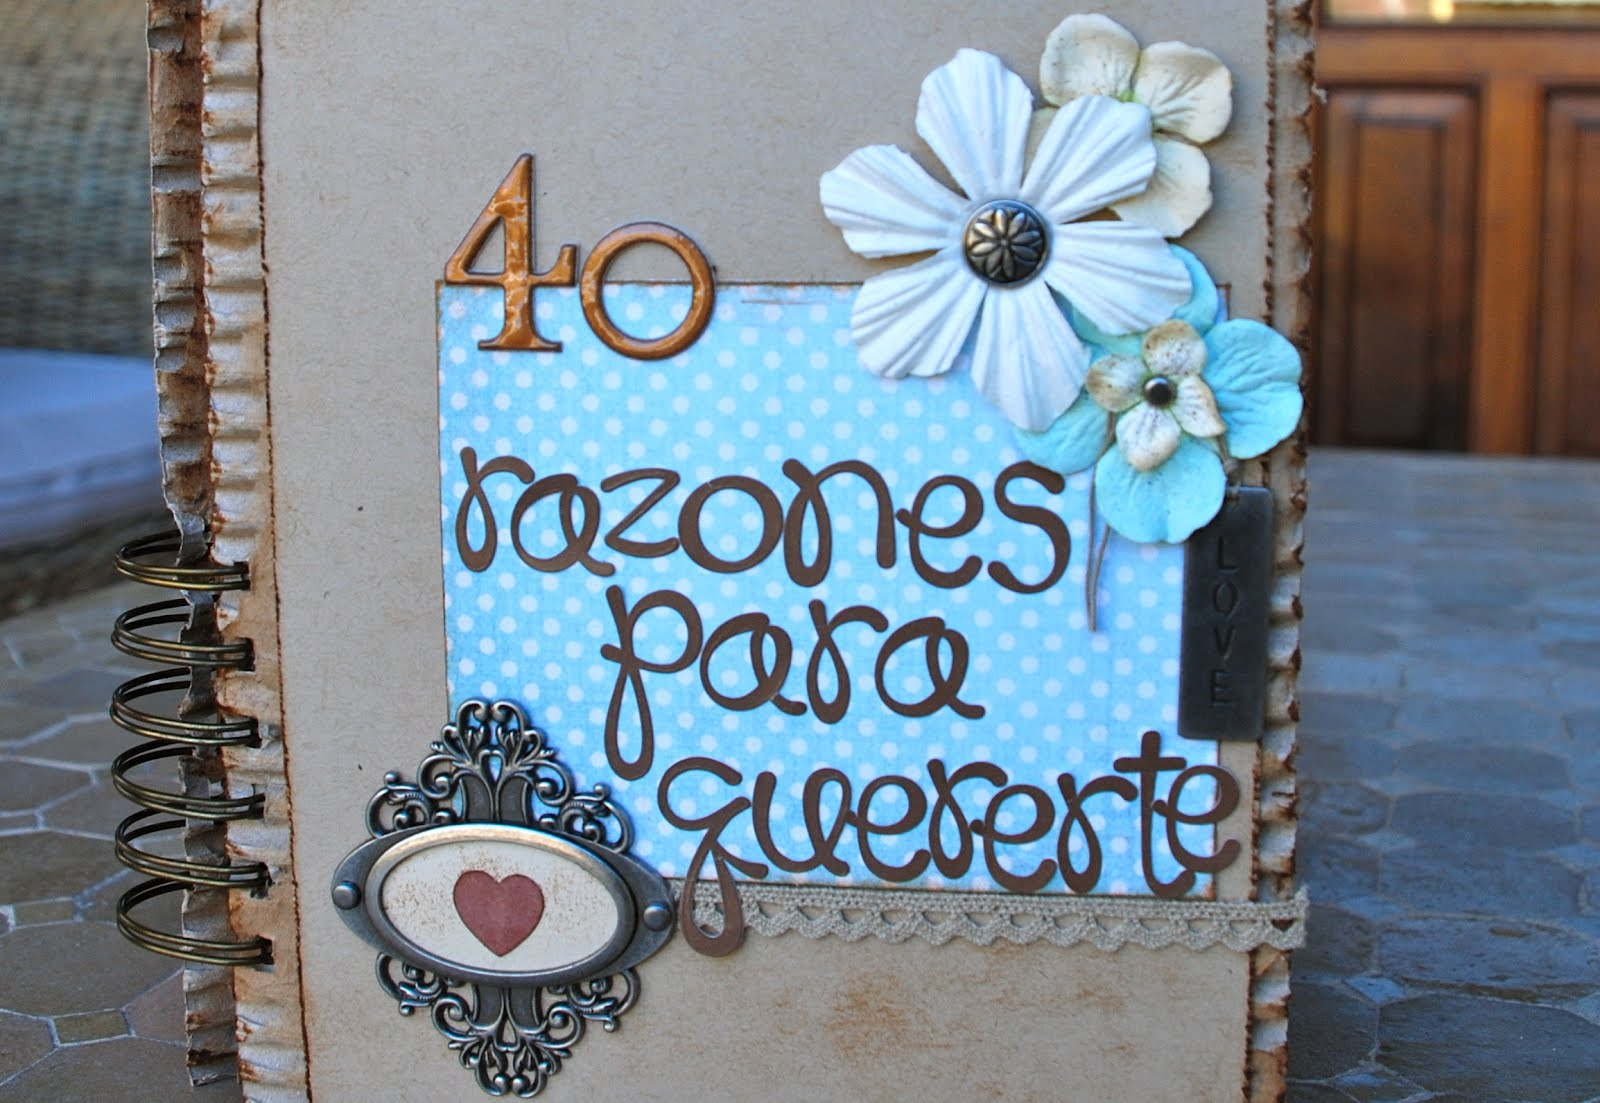 Scrap in love 40 razones son pocas - Ideas para un 40 cumpleanos ...